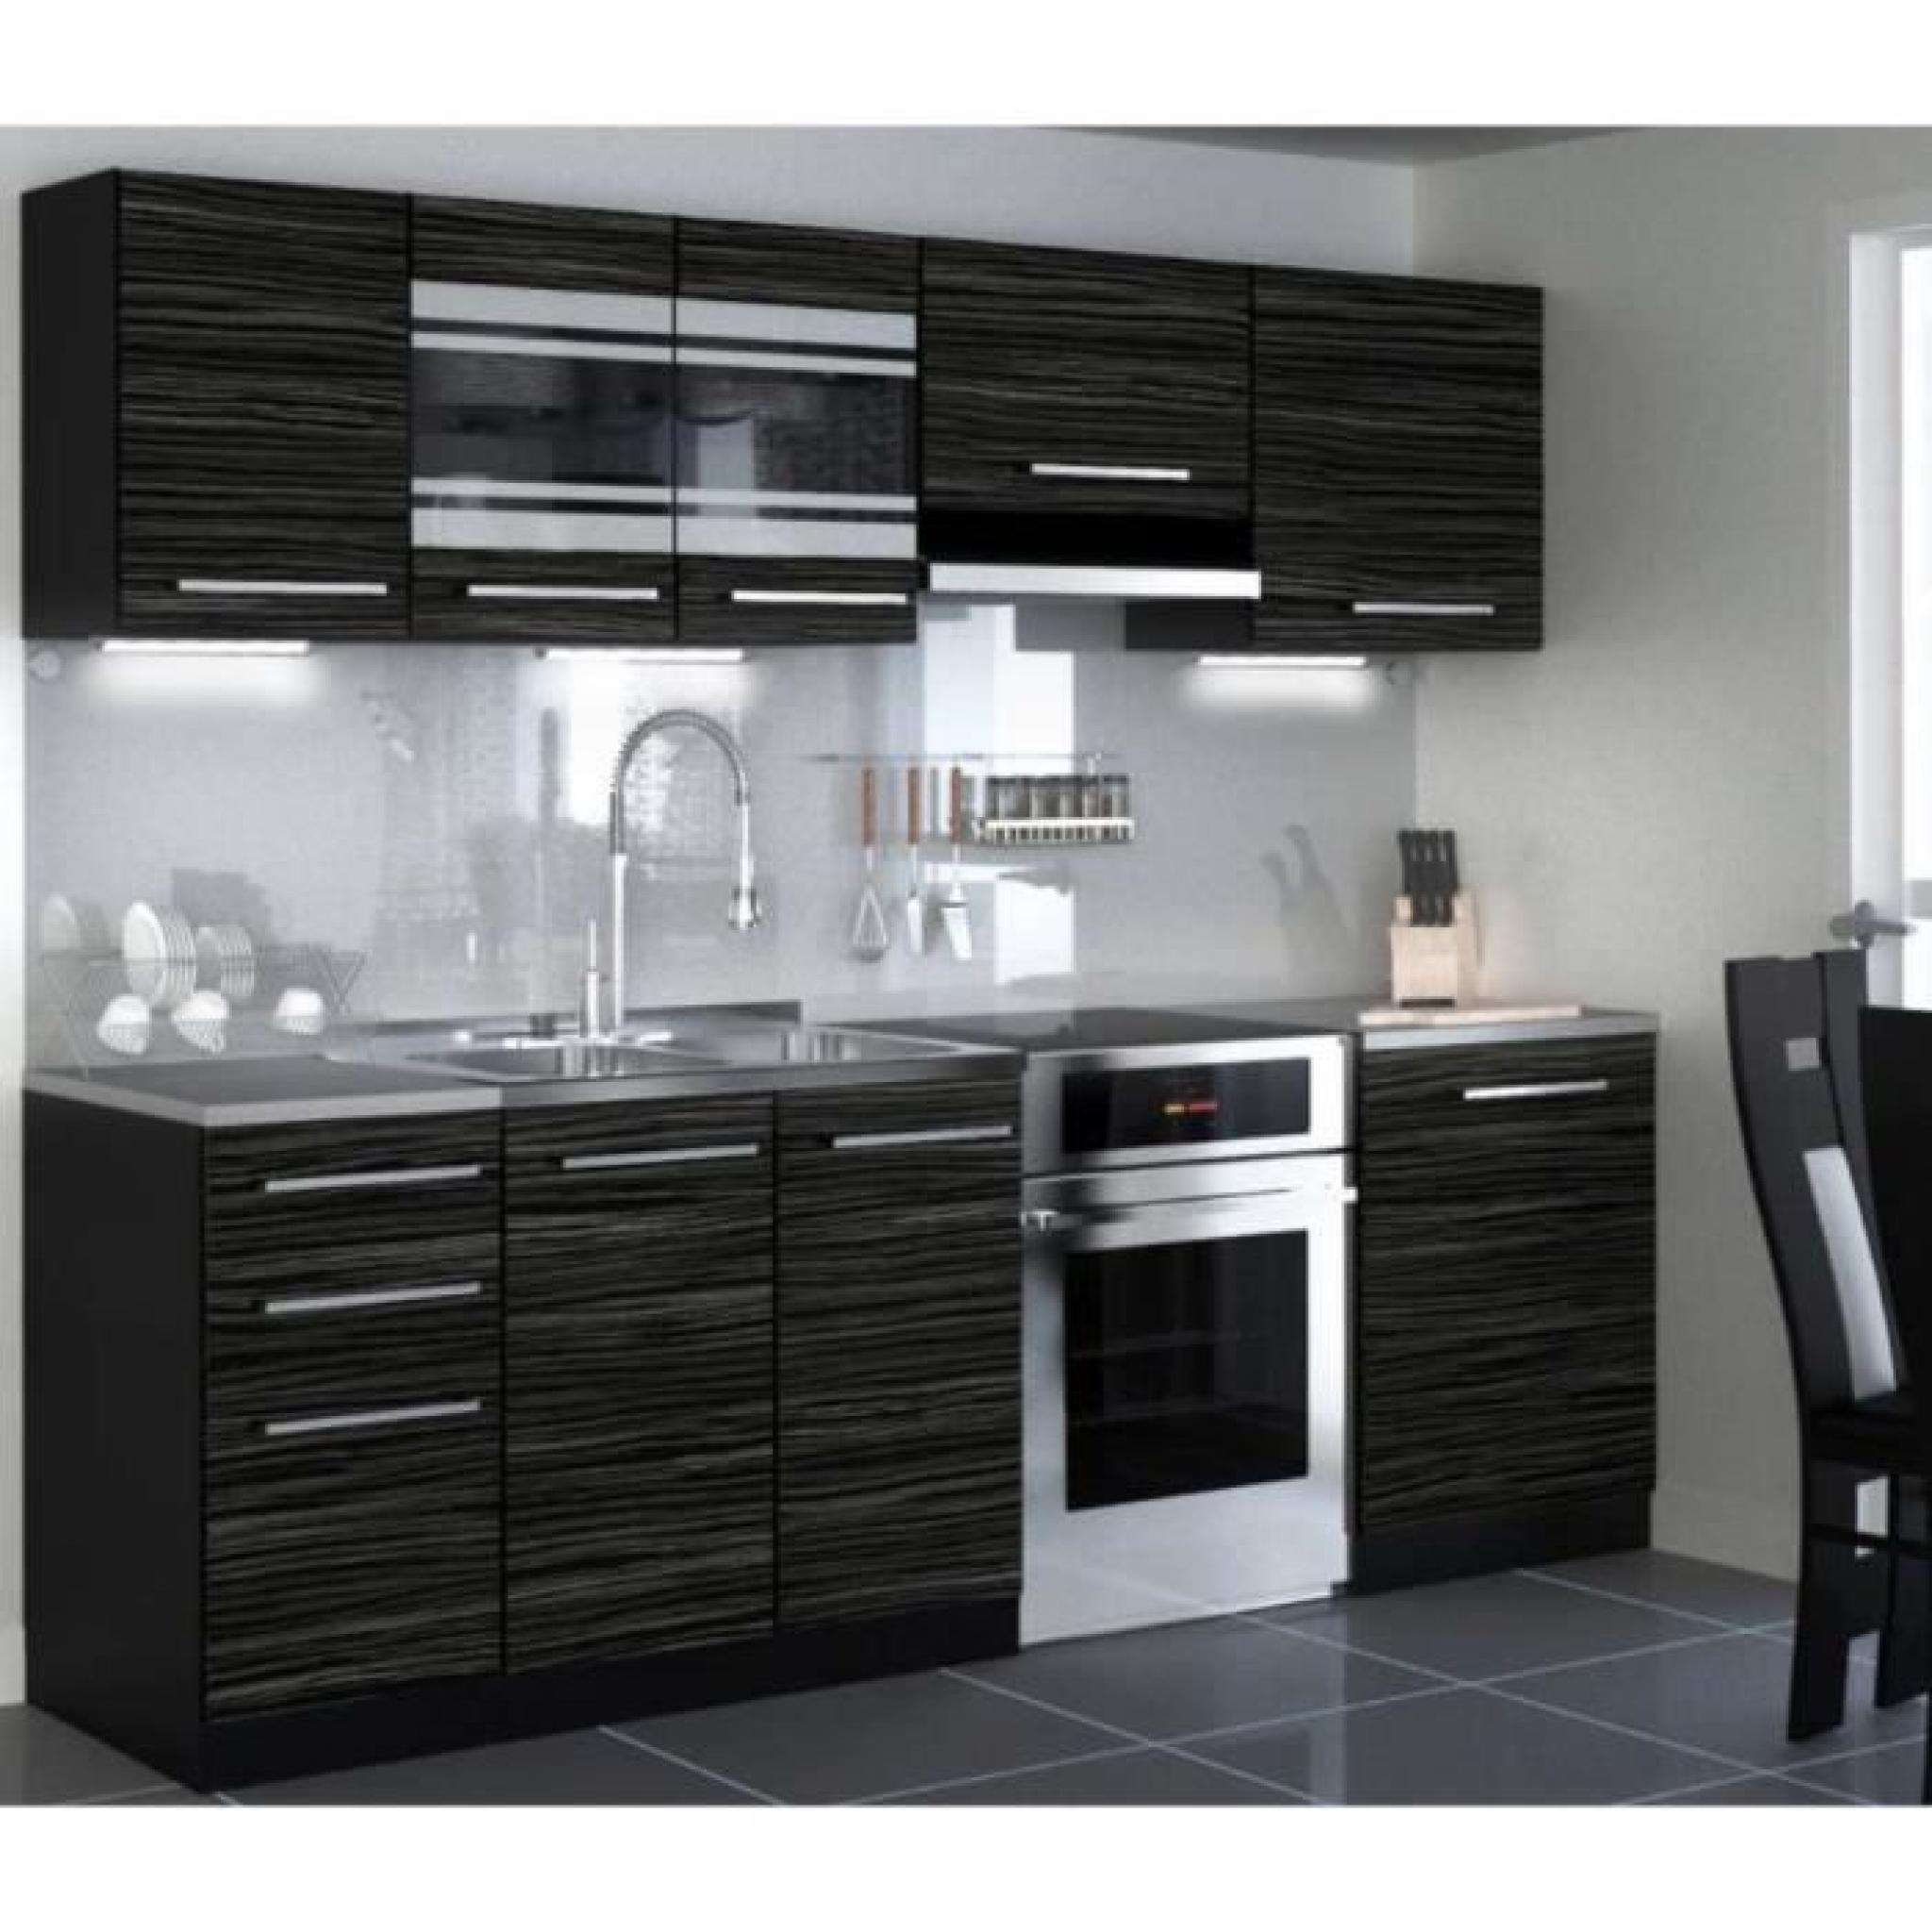 justhome torino led cuisine quip e compl te 240 cm mod le. Black Bedroom Furniture Sets. Home Design Ideas